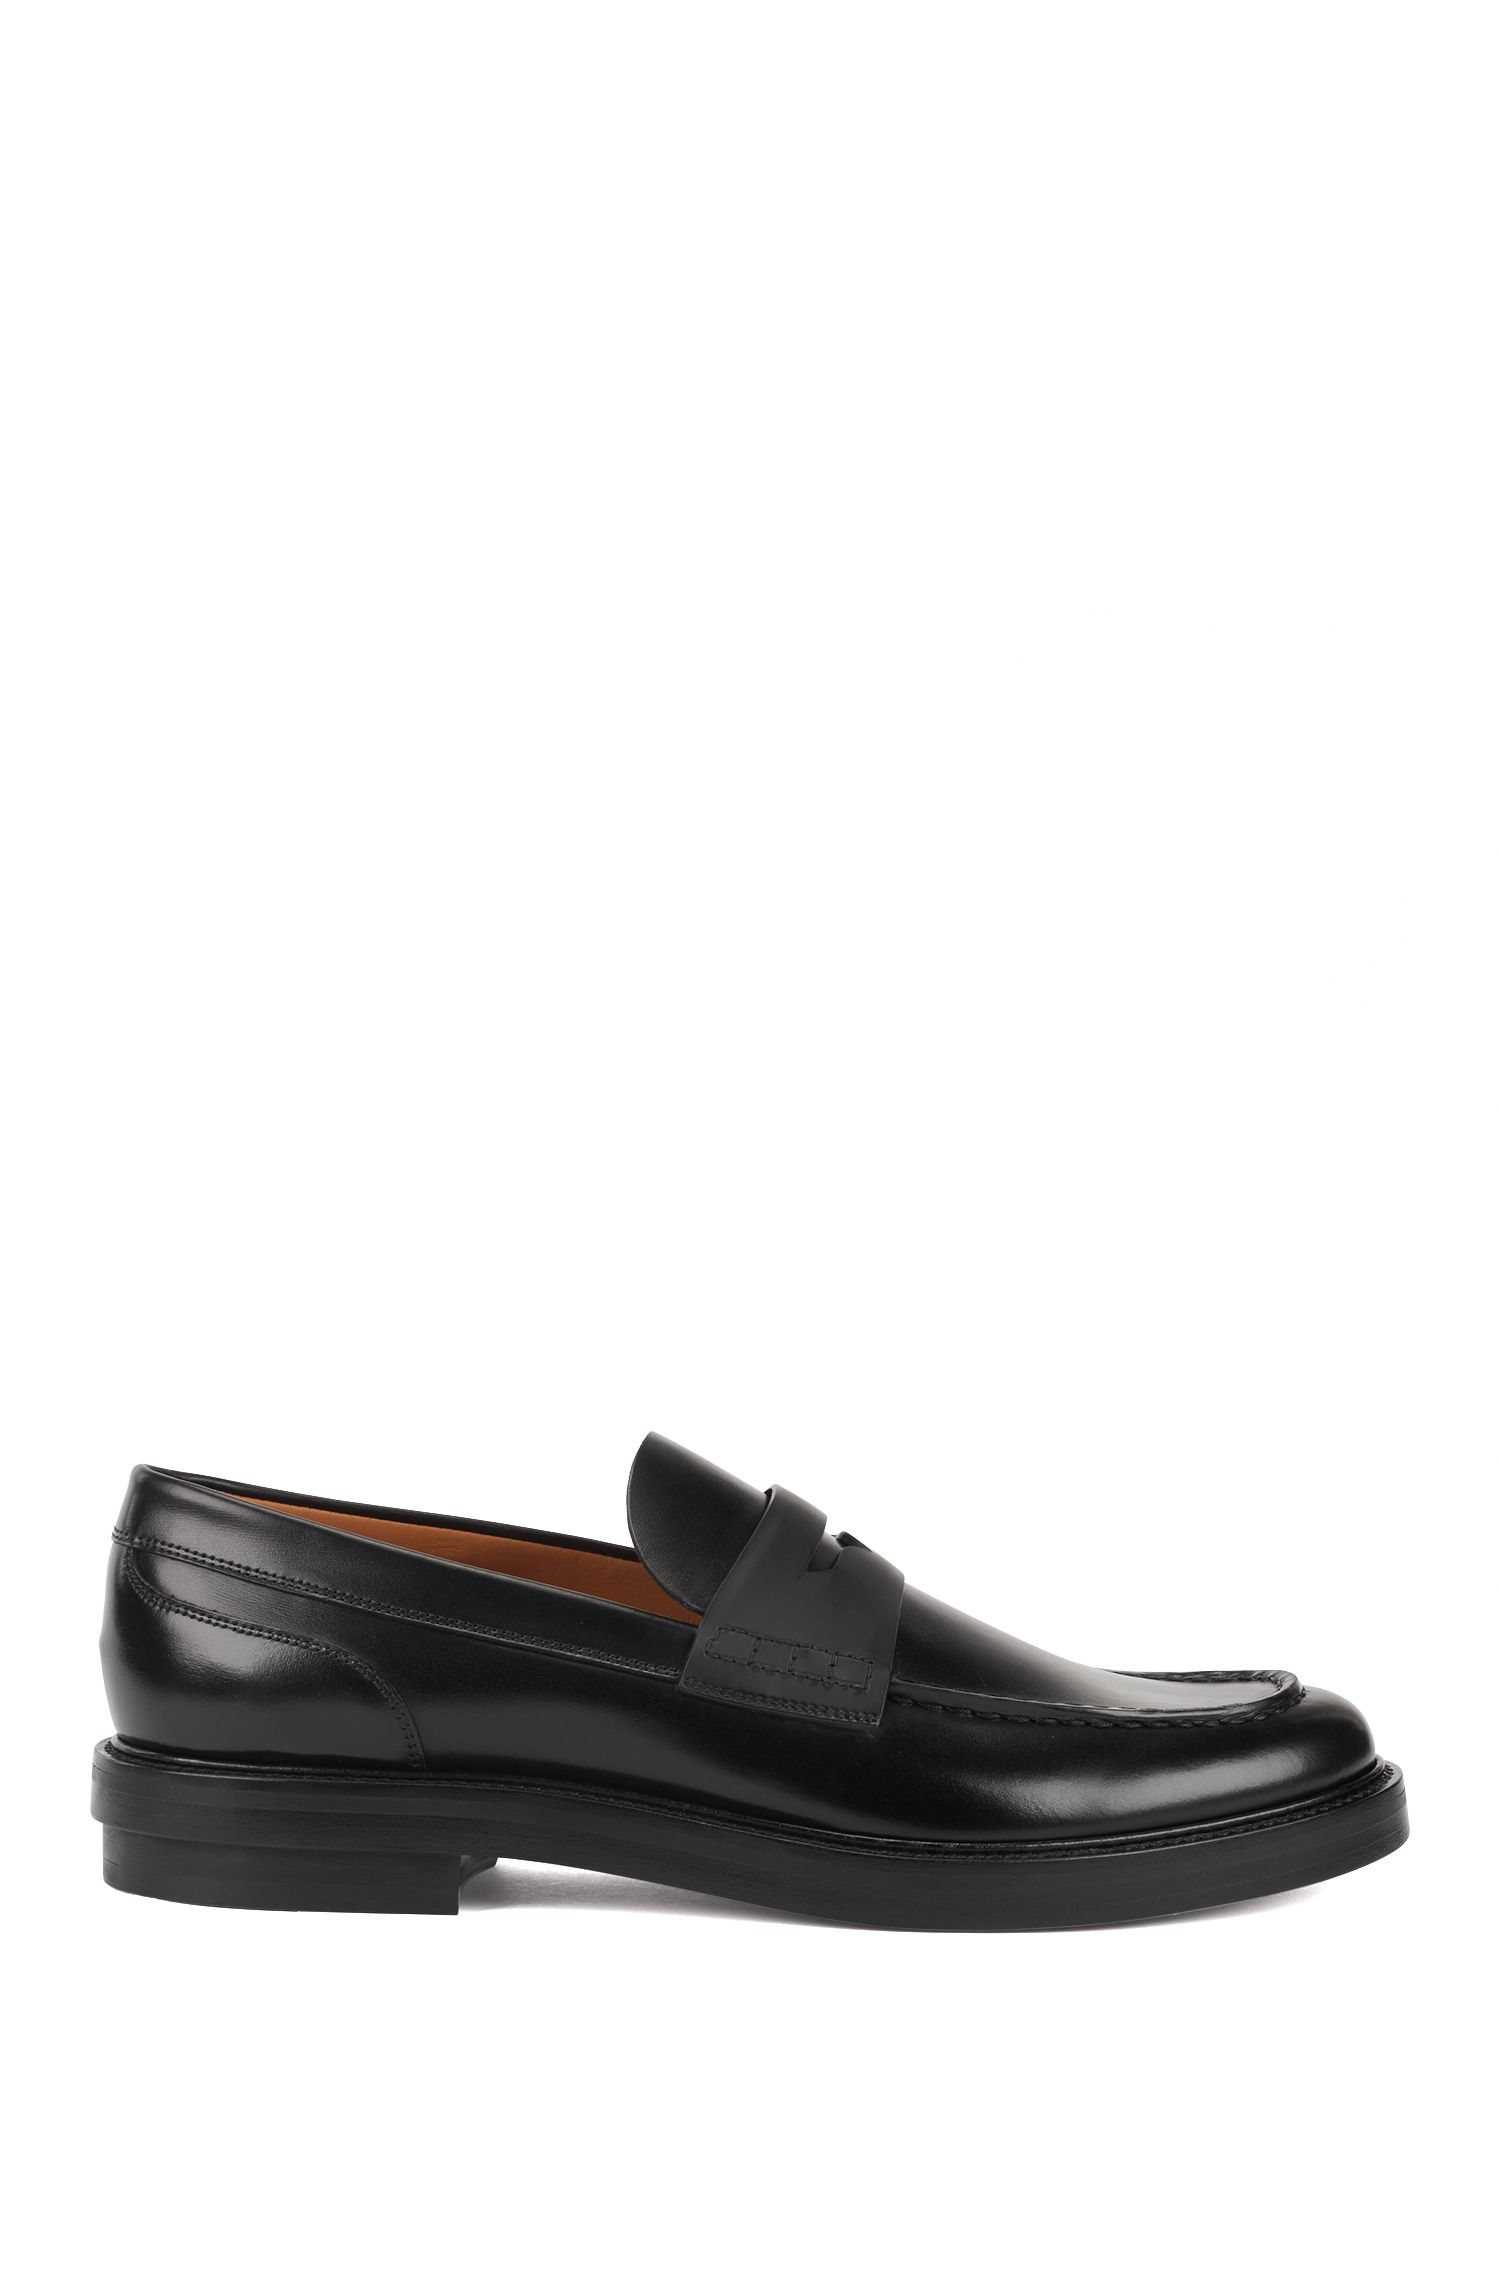 Fashion Show Capsule loafers in calf leather, Black